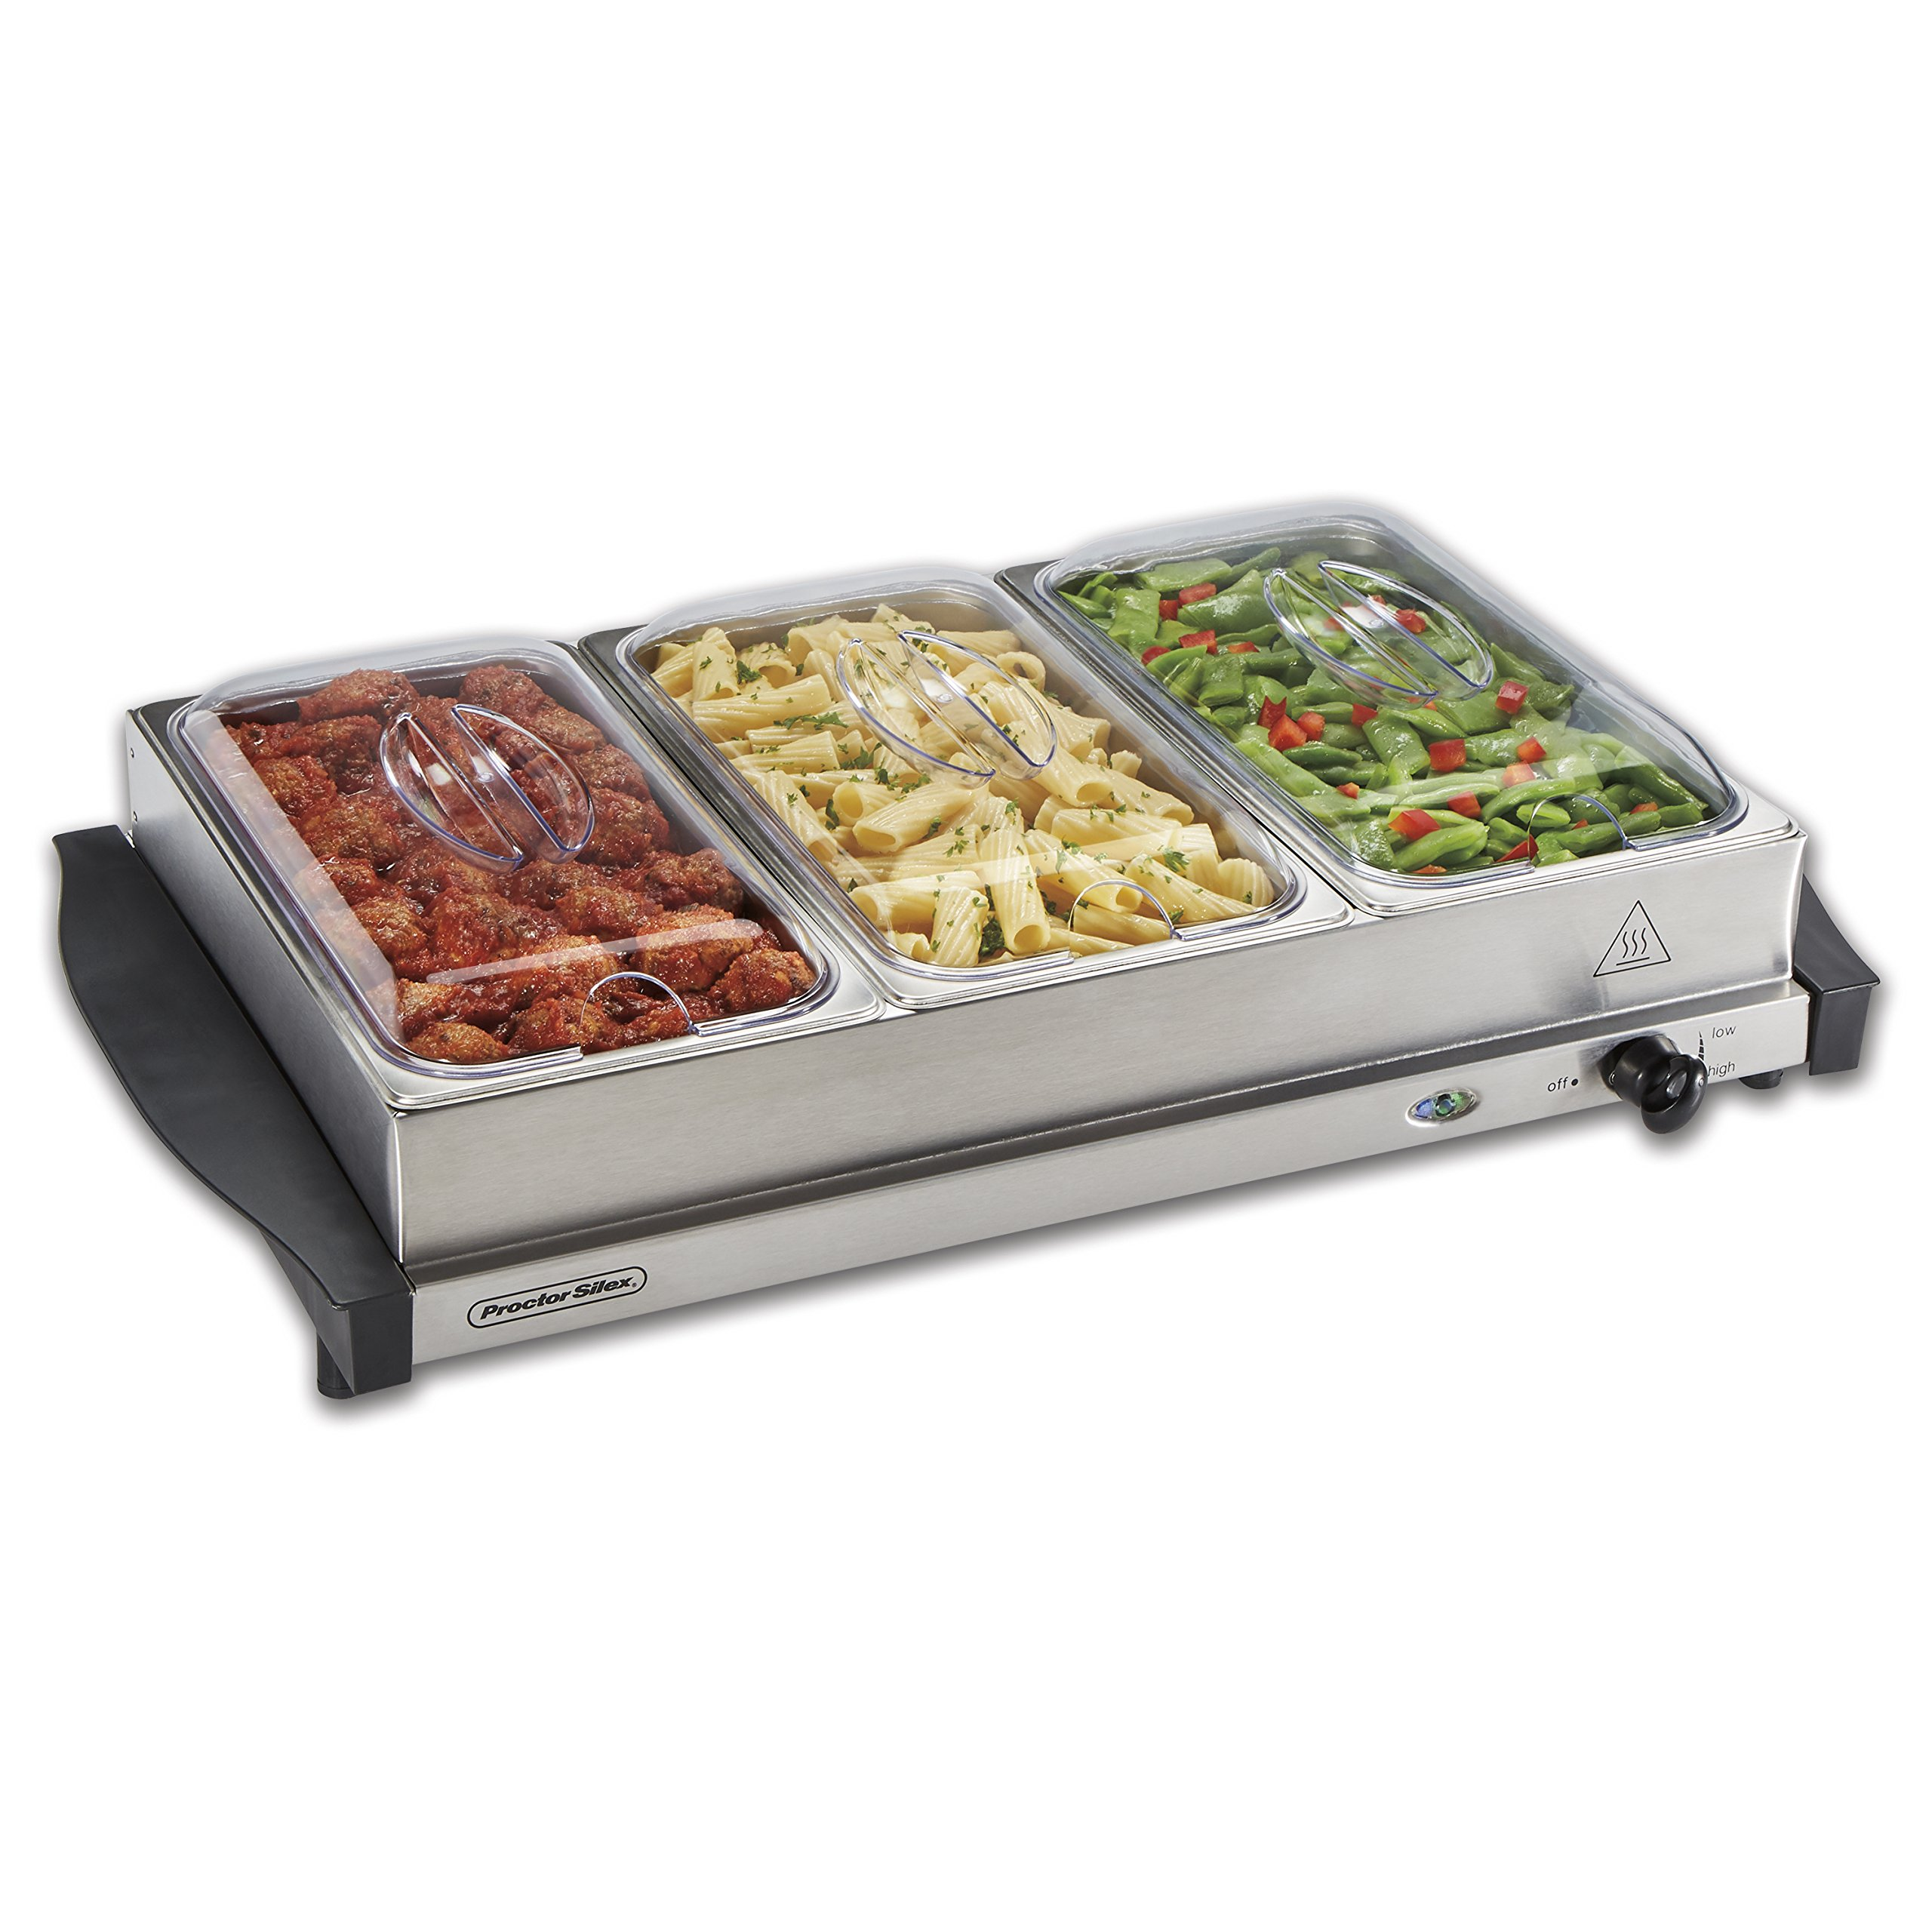 Proctor Silex 34300 Buffet Server & Food Warming Tray, Three 2.2 Quart Stainless Steel Chafing Dishes, Adjustable Heat